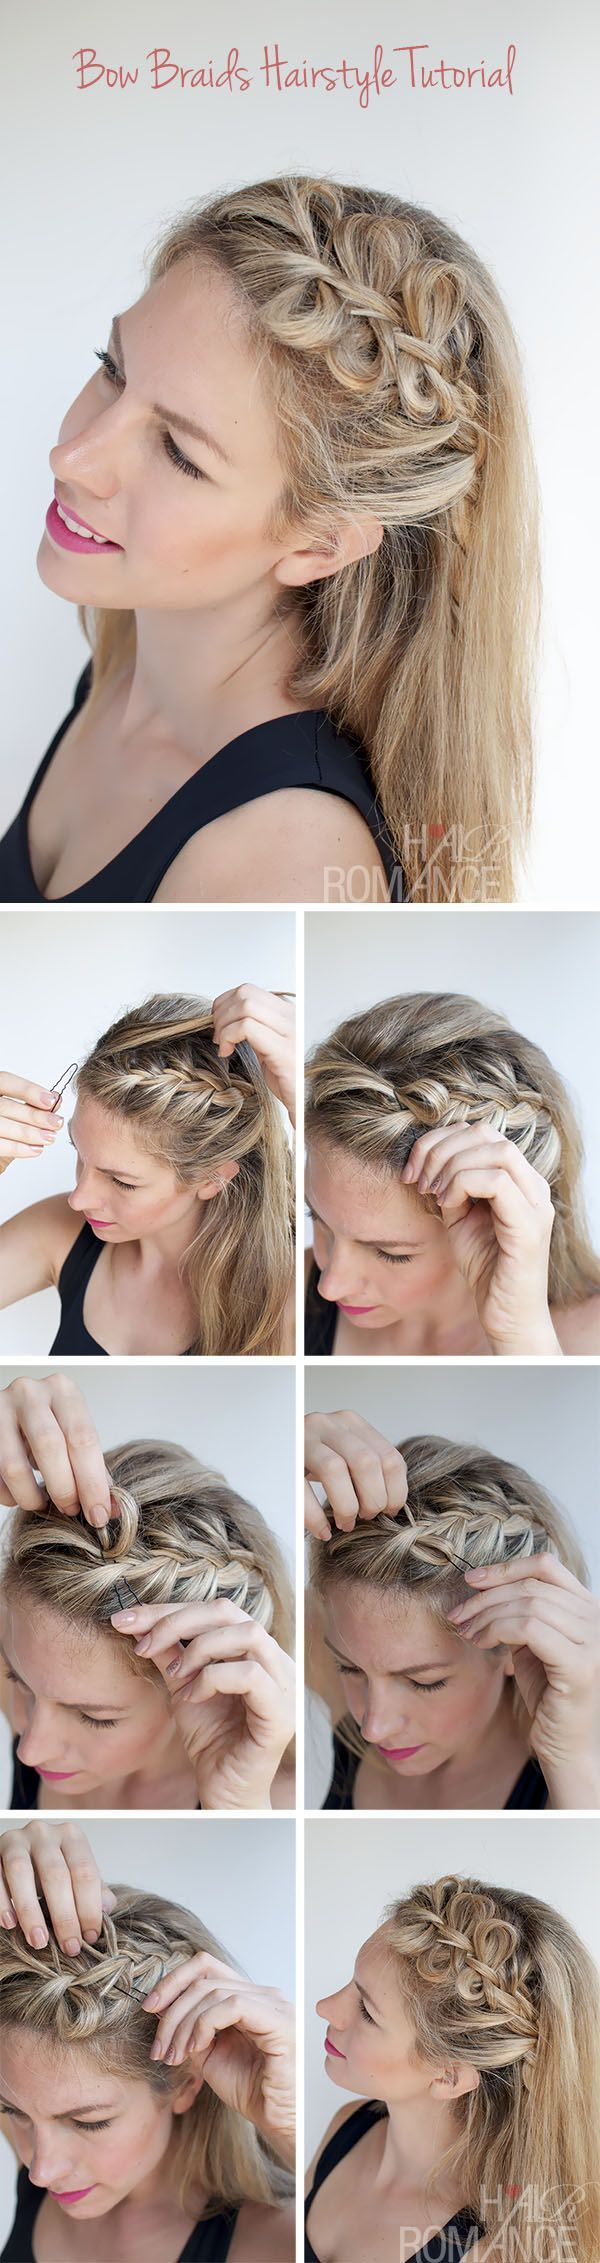 """Half up, half down hairstyles allow you to get creative with braids, twists and even your favorite go-to top knot. They work for any hair length and face shape and are a great option both for formal and casual events. You can style it for a wedding or a day chilling with friends. Here are … Continue reading """"55 Pretty Half Up Half Down Hairstyles Ideas"""""""